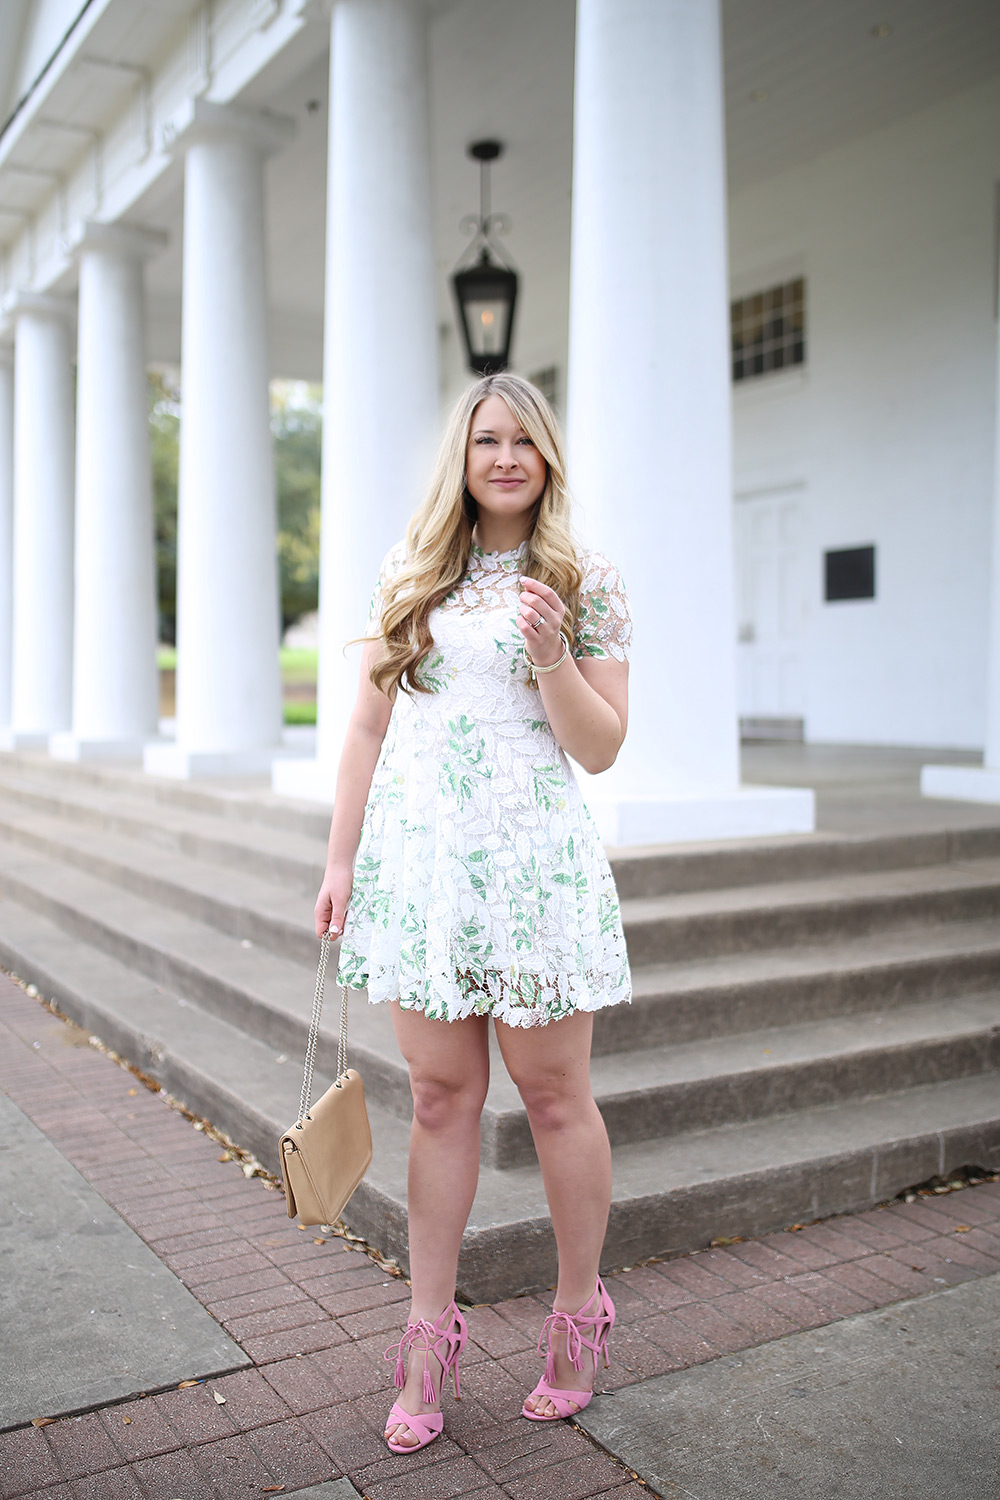 Dallas-fashion-blogger-Cameron-Proffitt-wears-dress-with-white-lace-overlay----chicwish-white-lace-dress----affordable-spring-outfit-6 - Springtime in Dallas